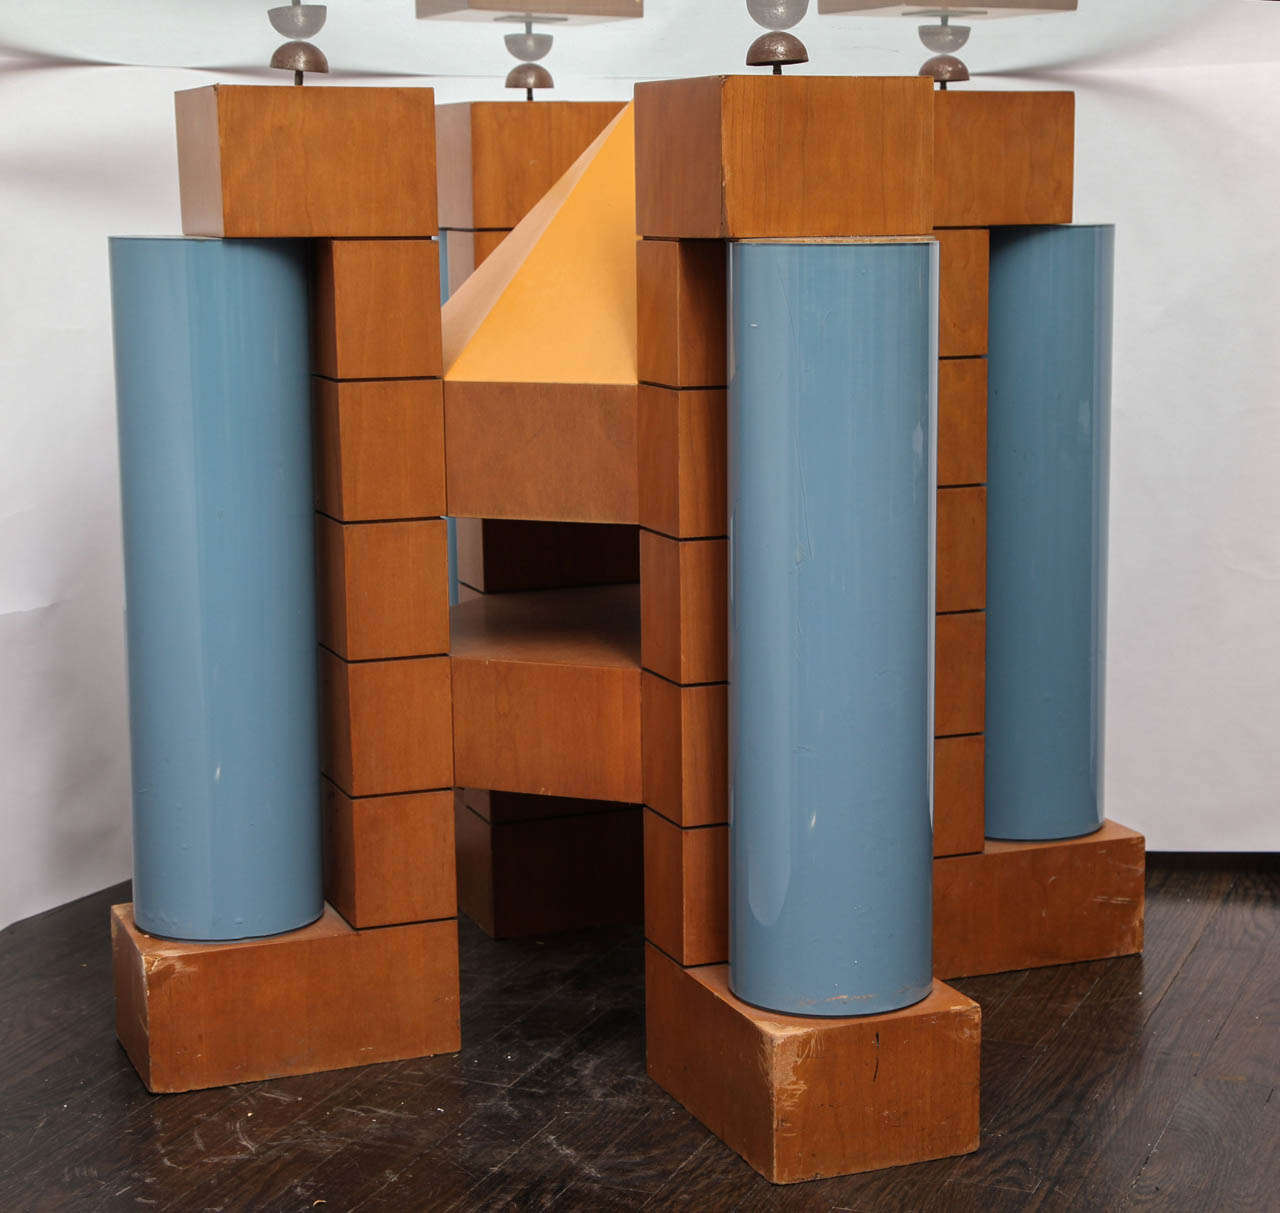 A 1980's Post Modern Dining Table by Michael Graves 4